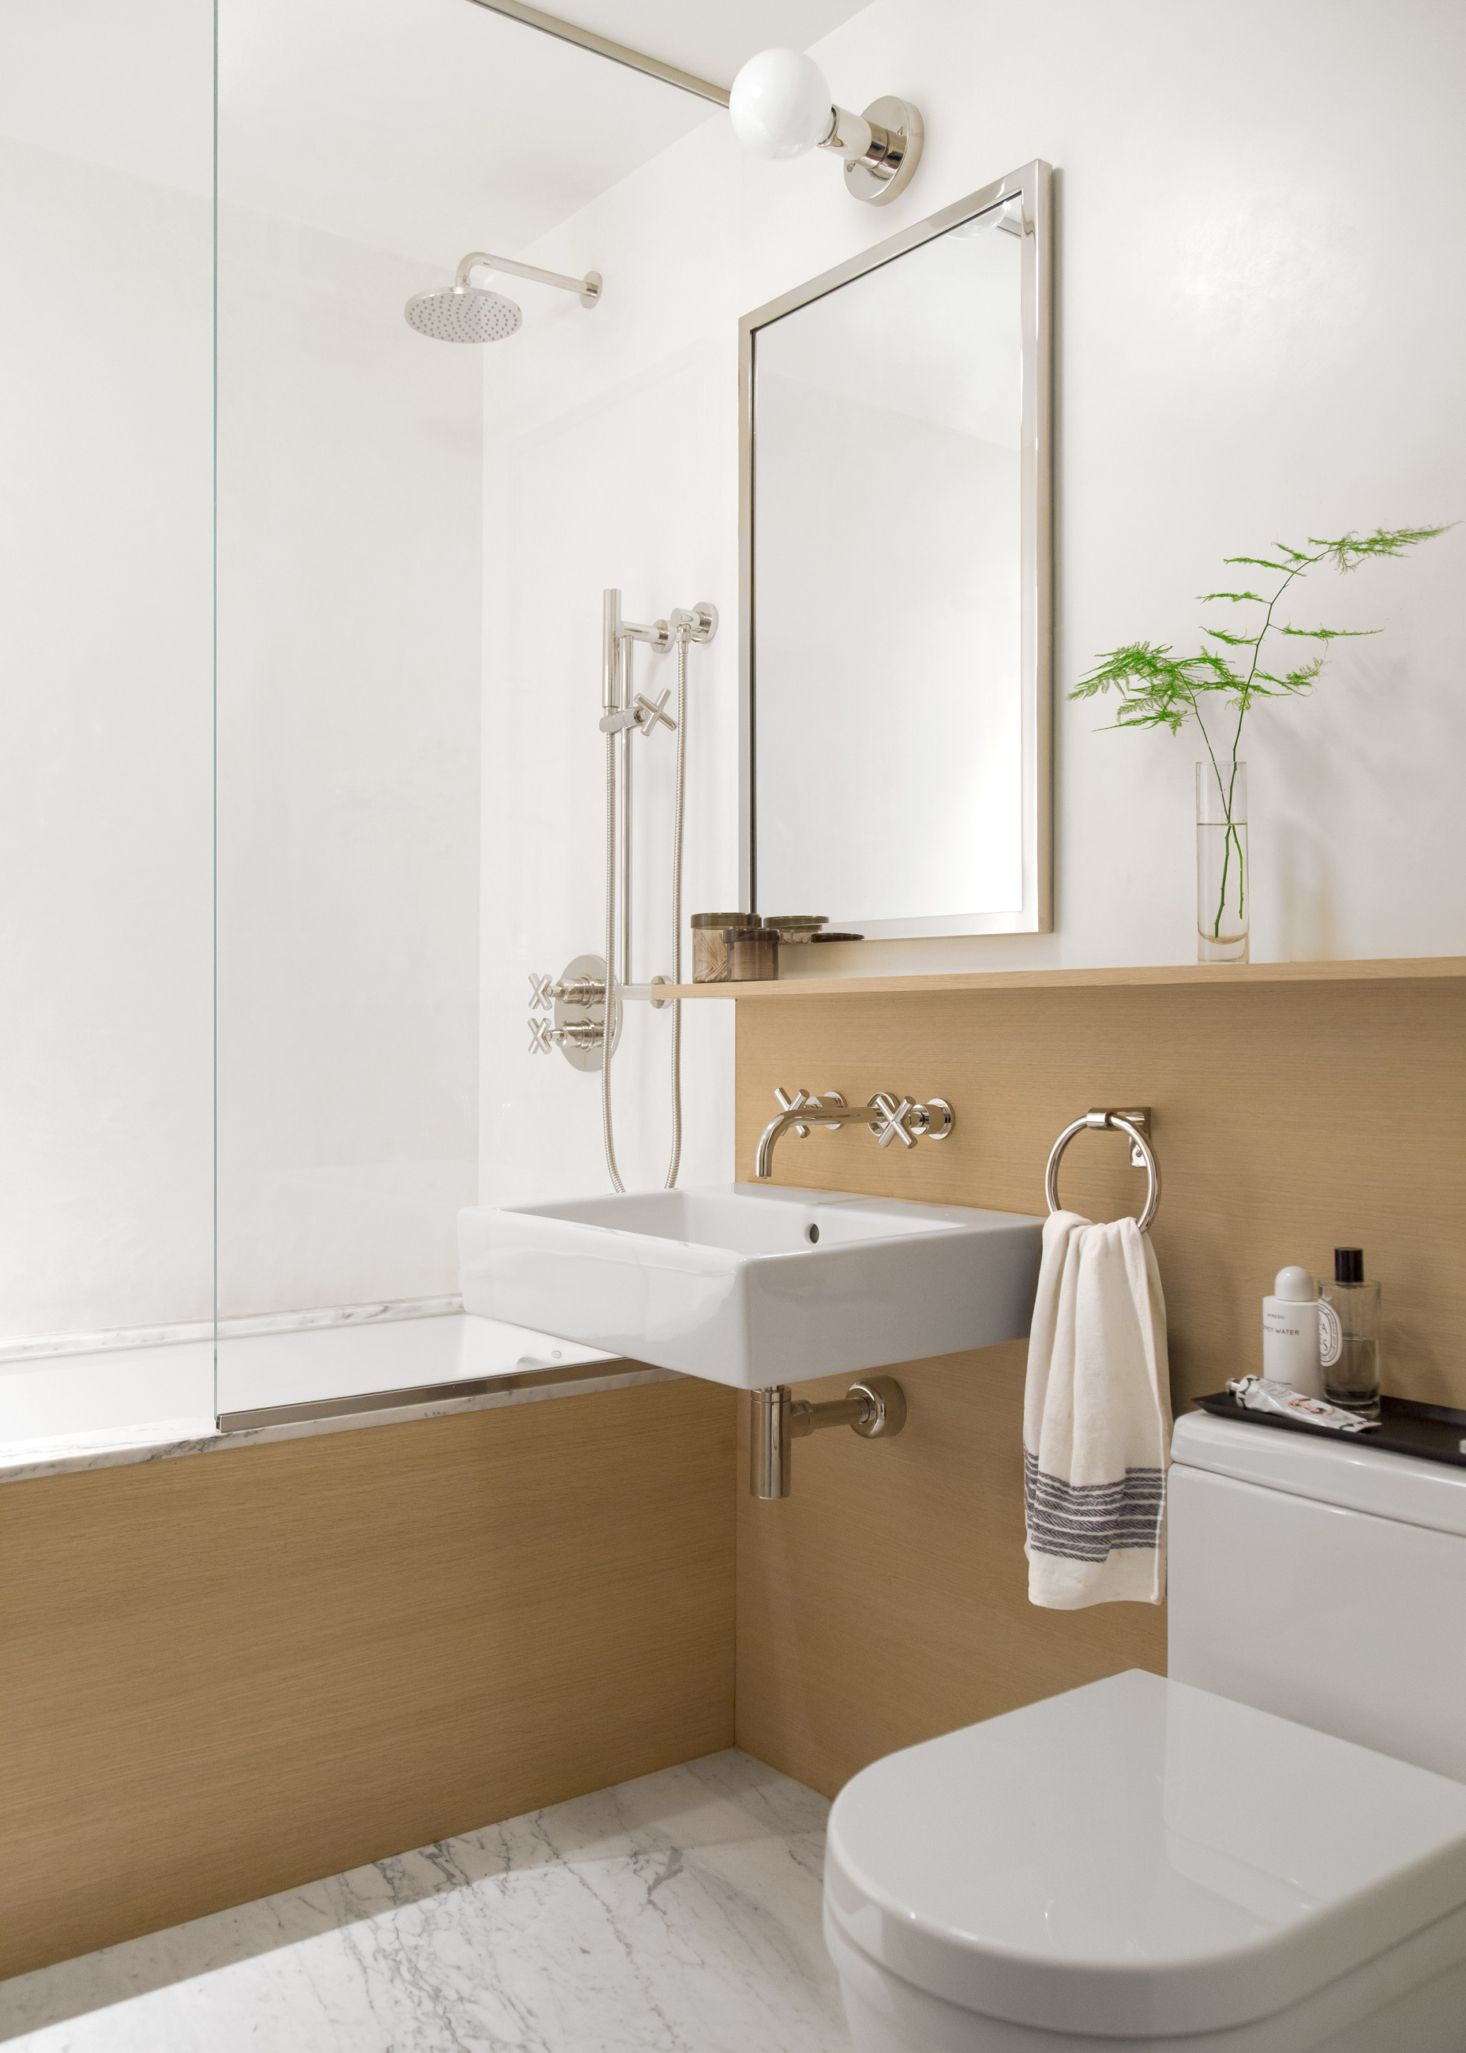 The half wall built in shelf and bathtub surround were constructed from oak The floor is a slab of honed White Gioia—the same material that surrounds the